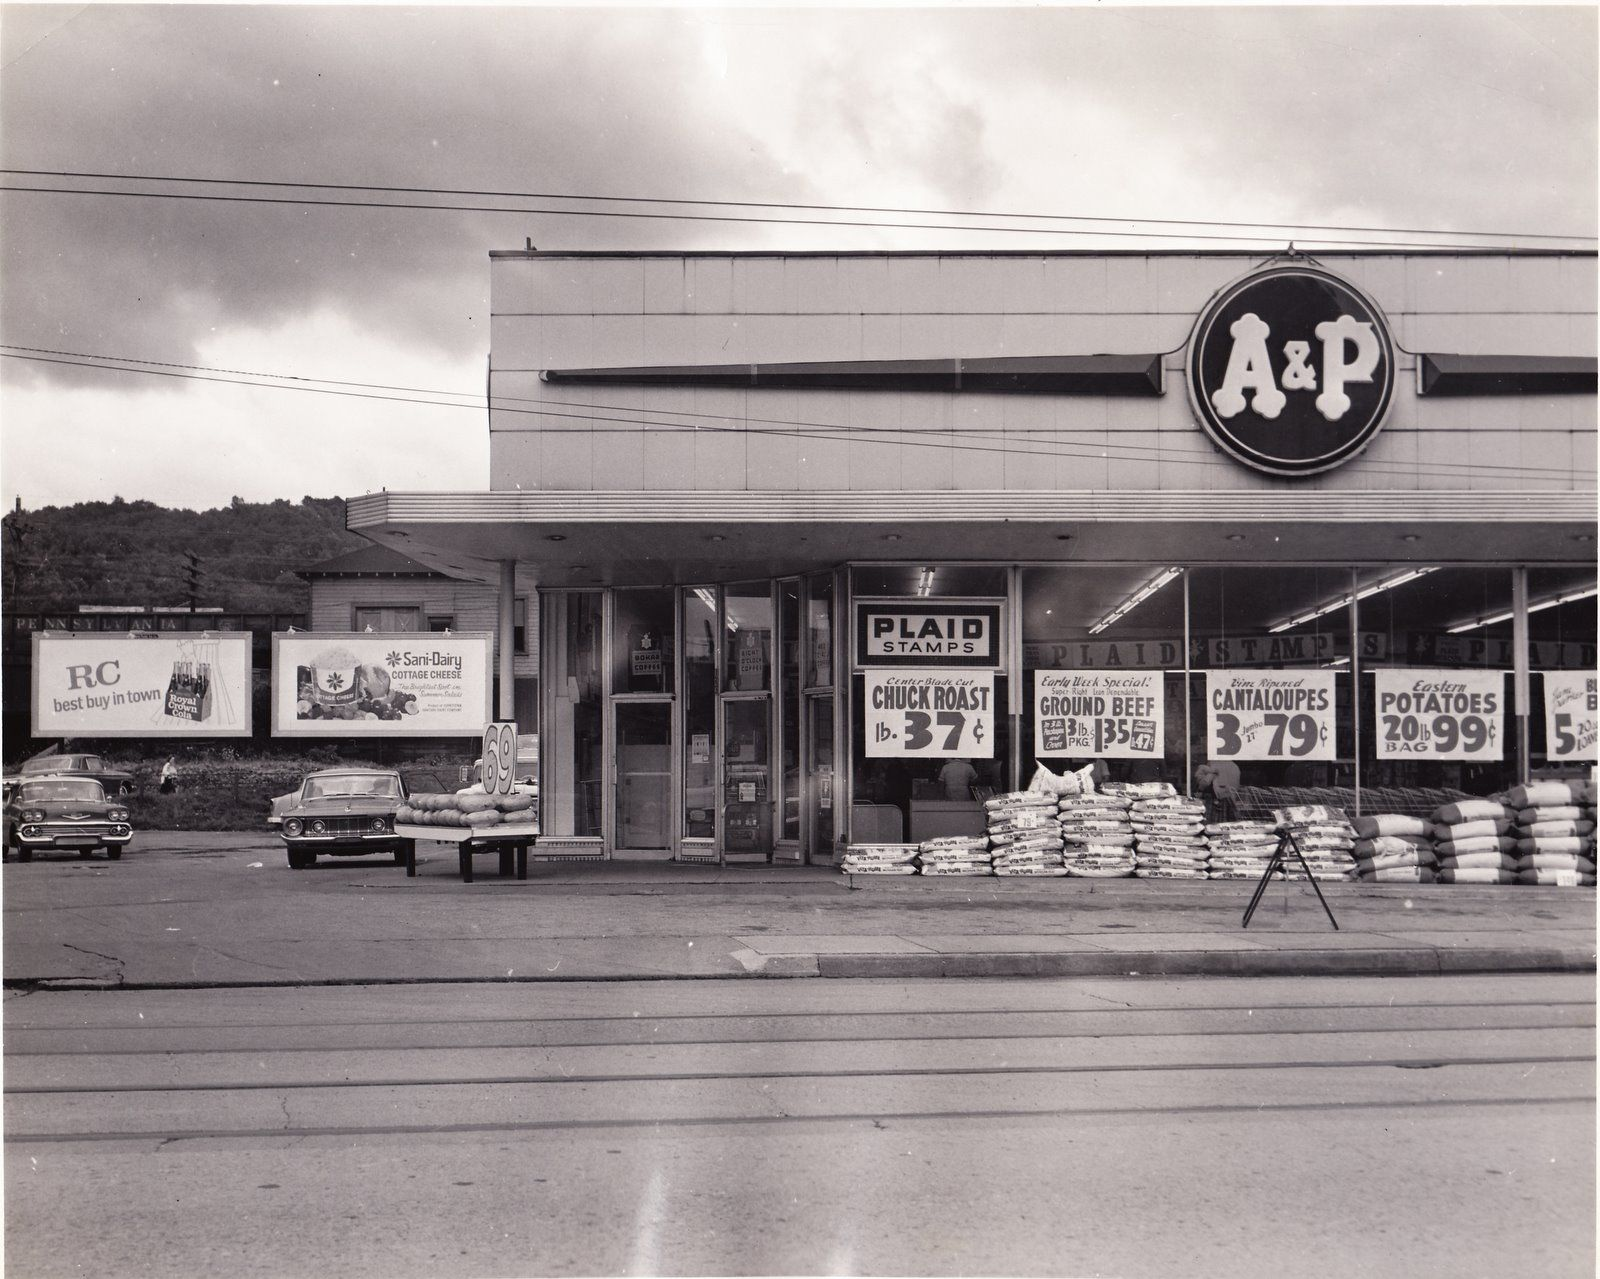 A & P Grocery Store always loved going to this store with ...